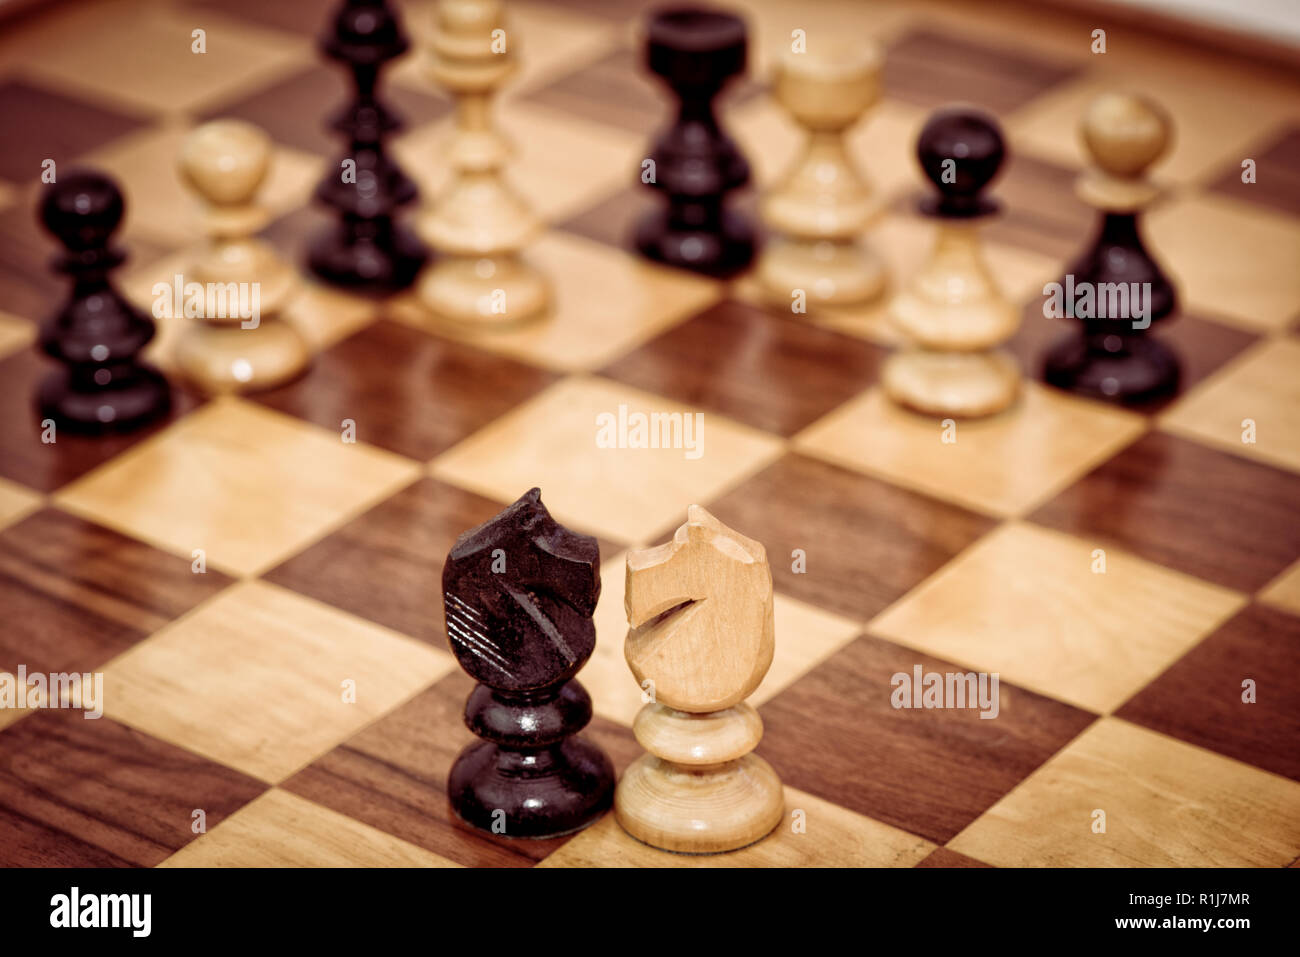 Black and white chess pieces on chessboard - Stock Image